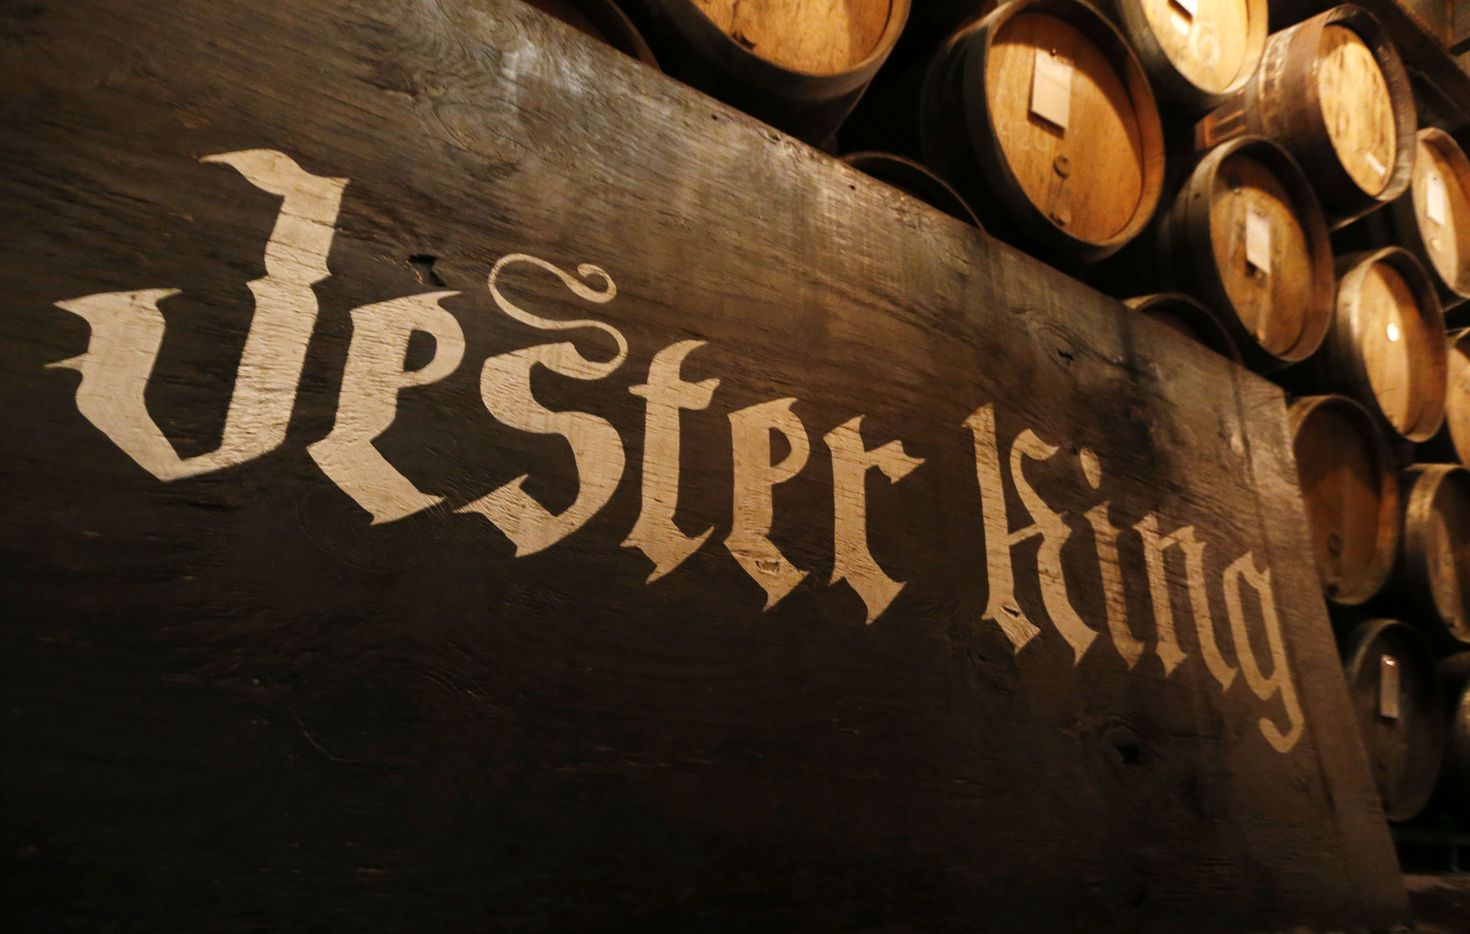 Jester King Brewery in Austin, Texas on Friday, February 23, 2018.